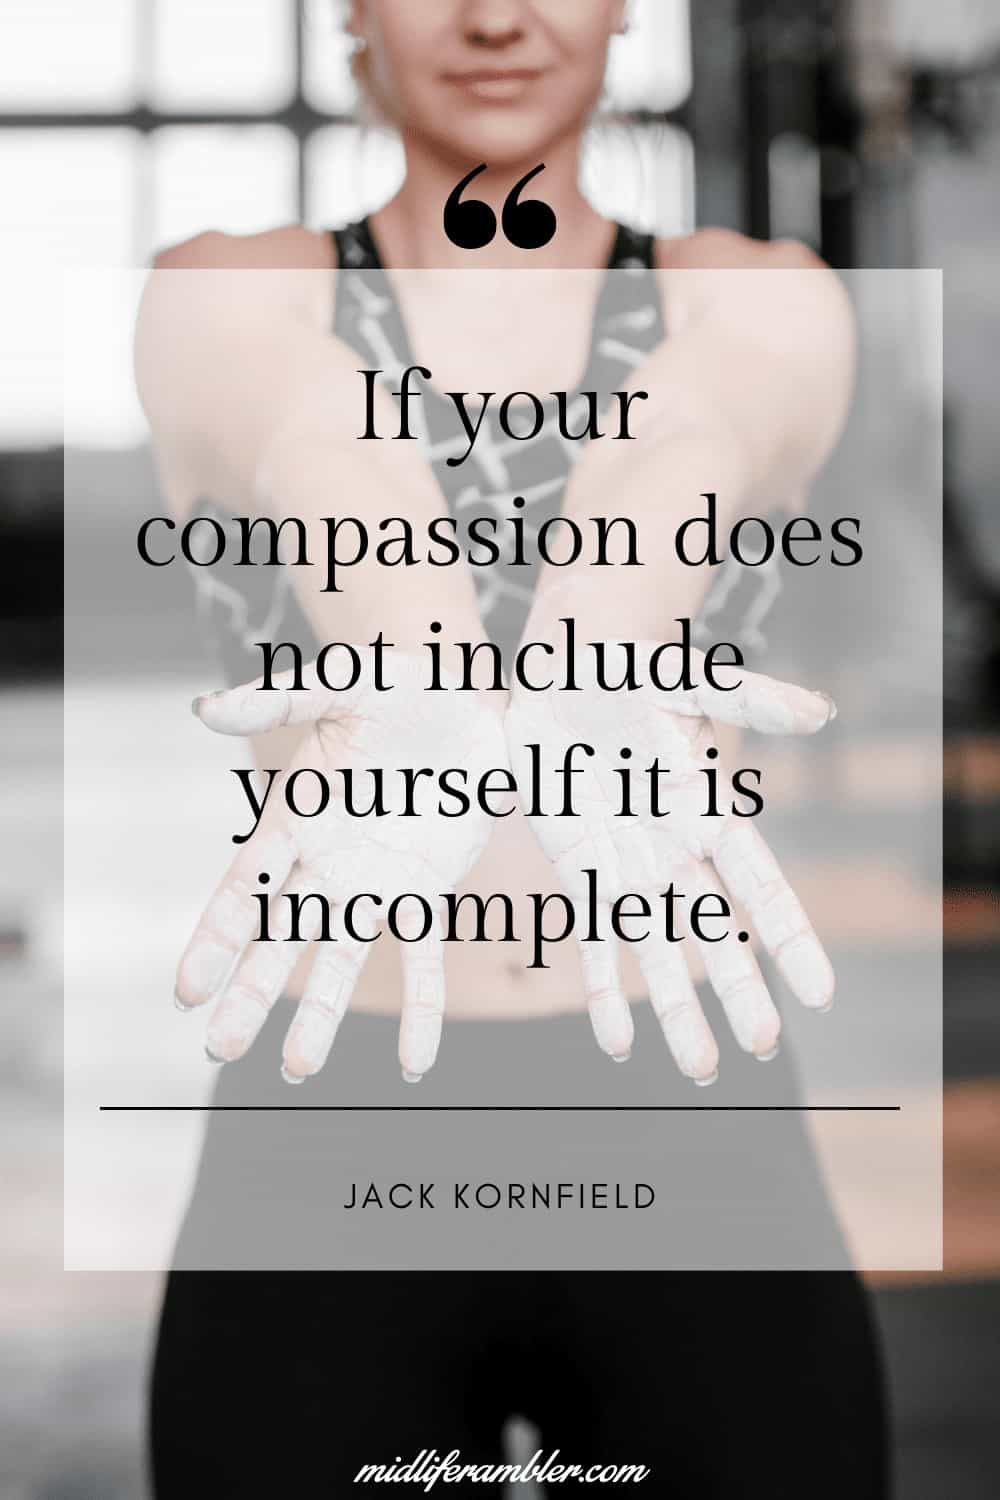 50 Self-Compassion Quotes and Affirmations to Help You Learn to Love and Accept Yourself - If your compassion does not include yourself it is incomplete. - Jack Kornfield